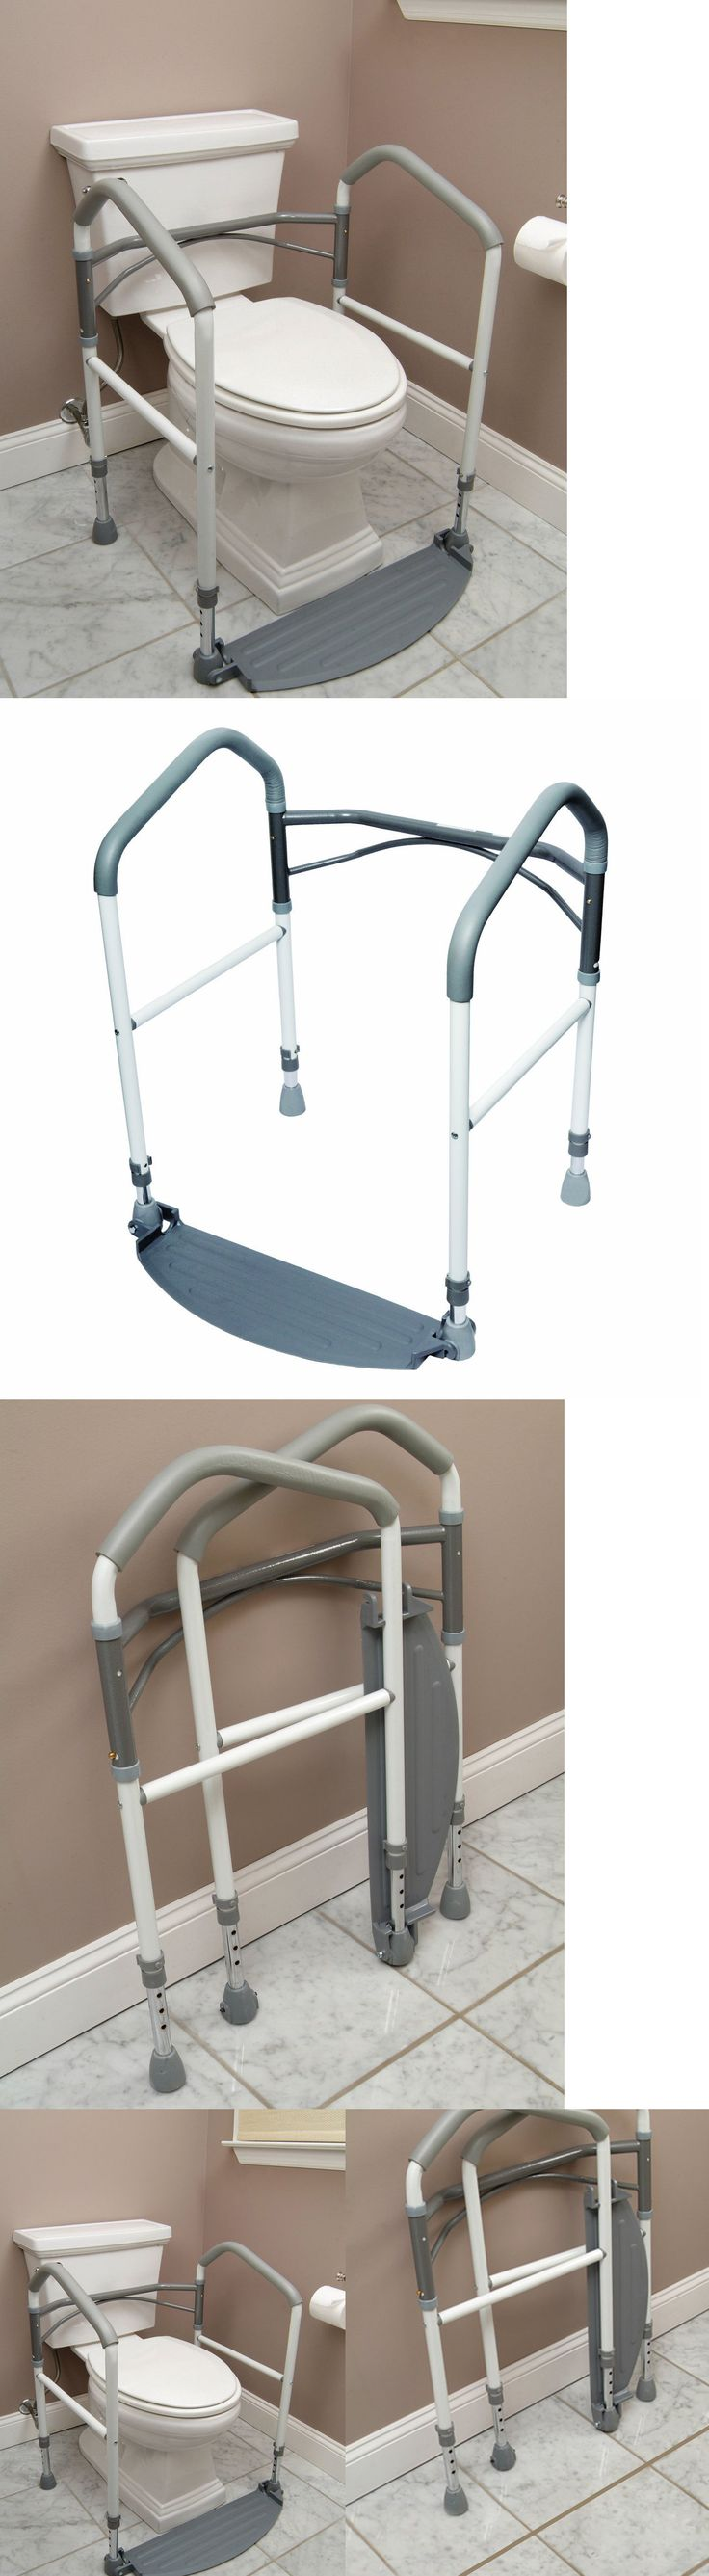 Handles and Rails: Toilet Surround Support Safety Frame Elderly Mobility Aid Portable Grab Bar Rail BUY IT NOW ONLY: $114.9